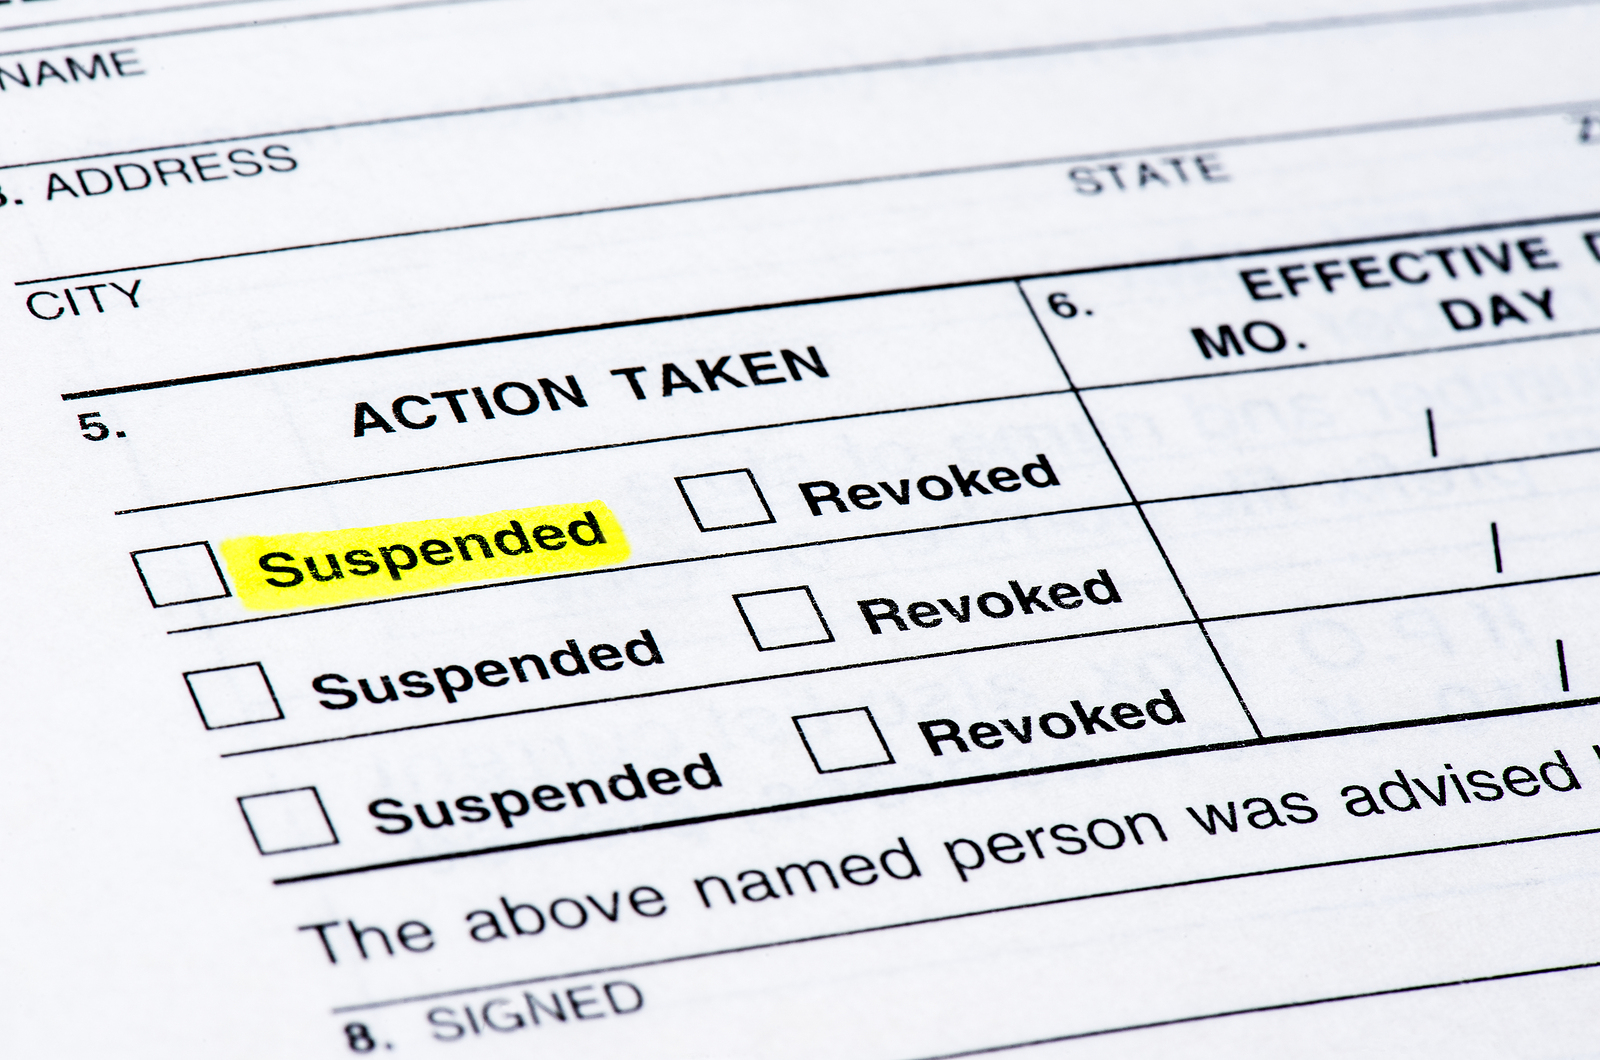 Appealing a Suspended License in Raleigh, NC